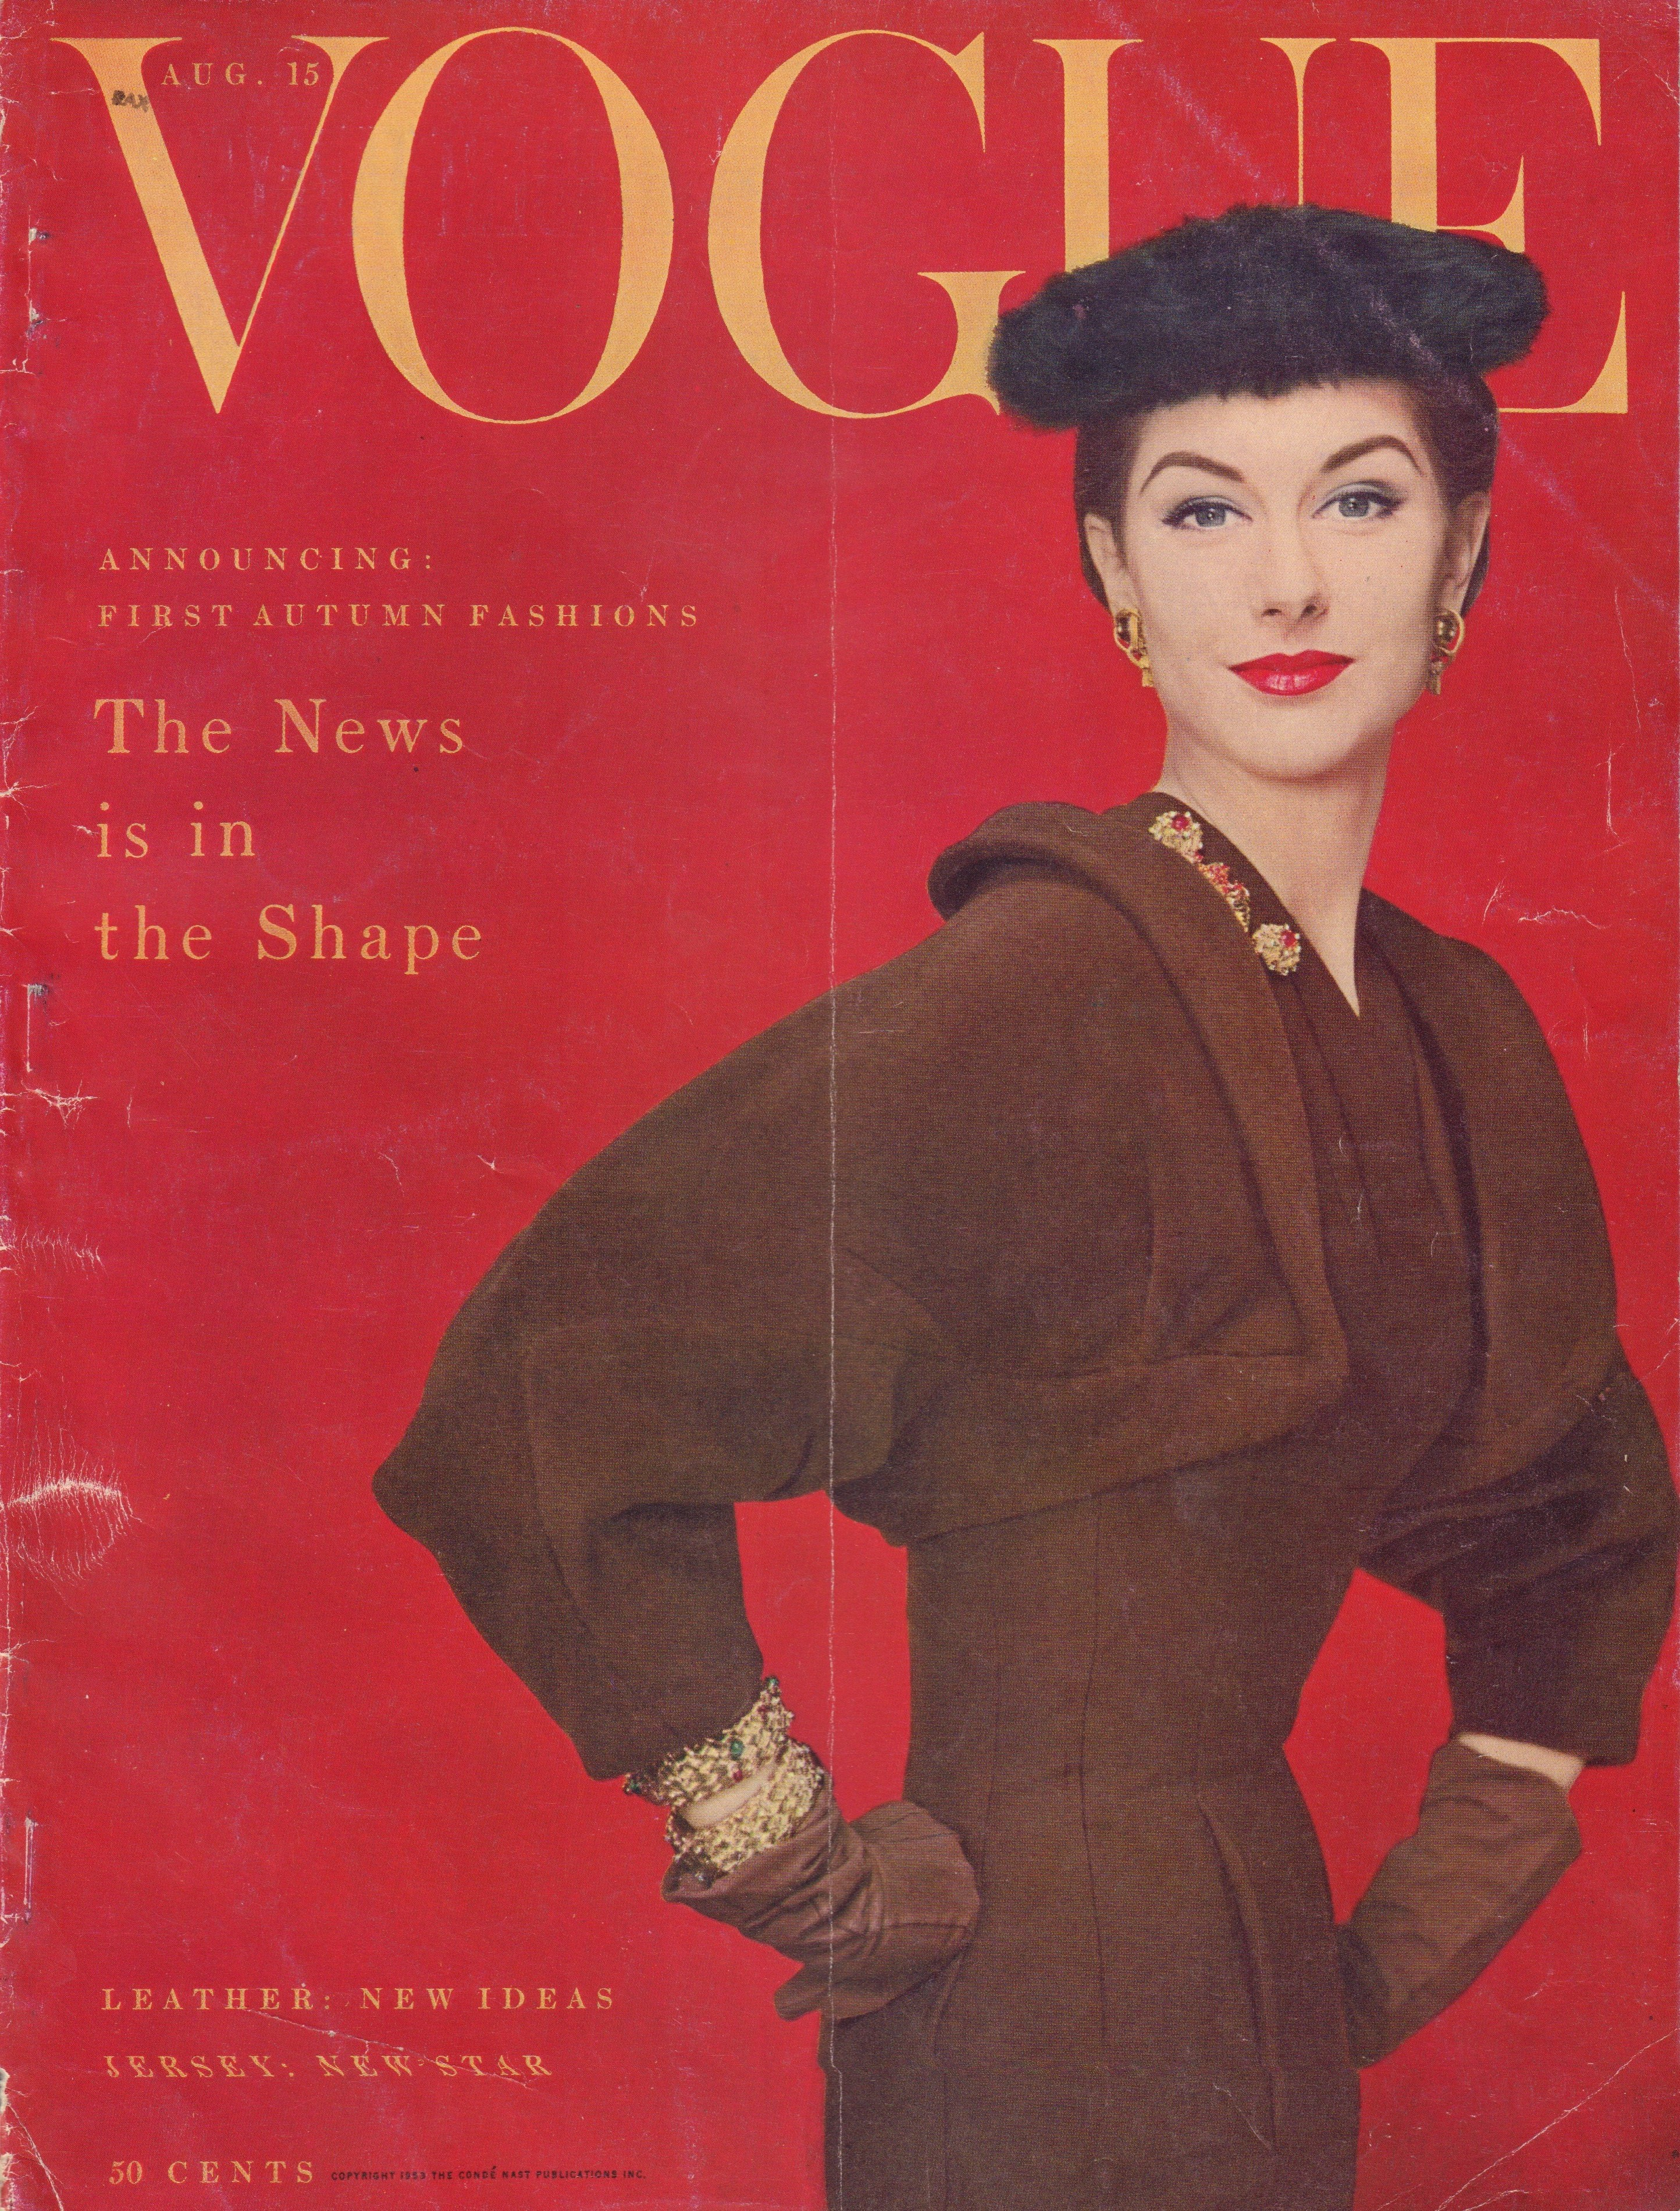 Image for Vogue Magazine. August 15, 1953